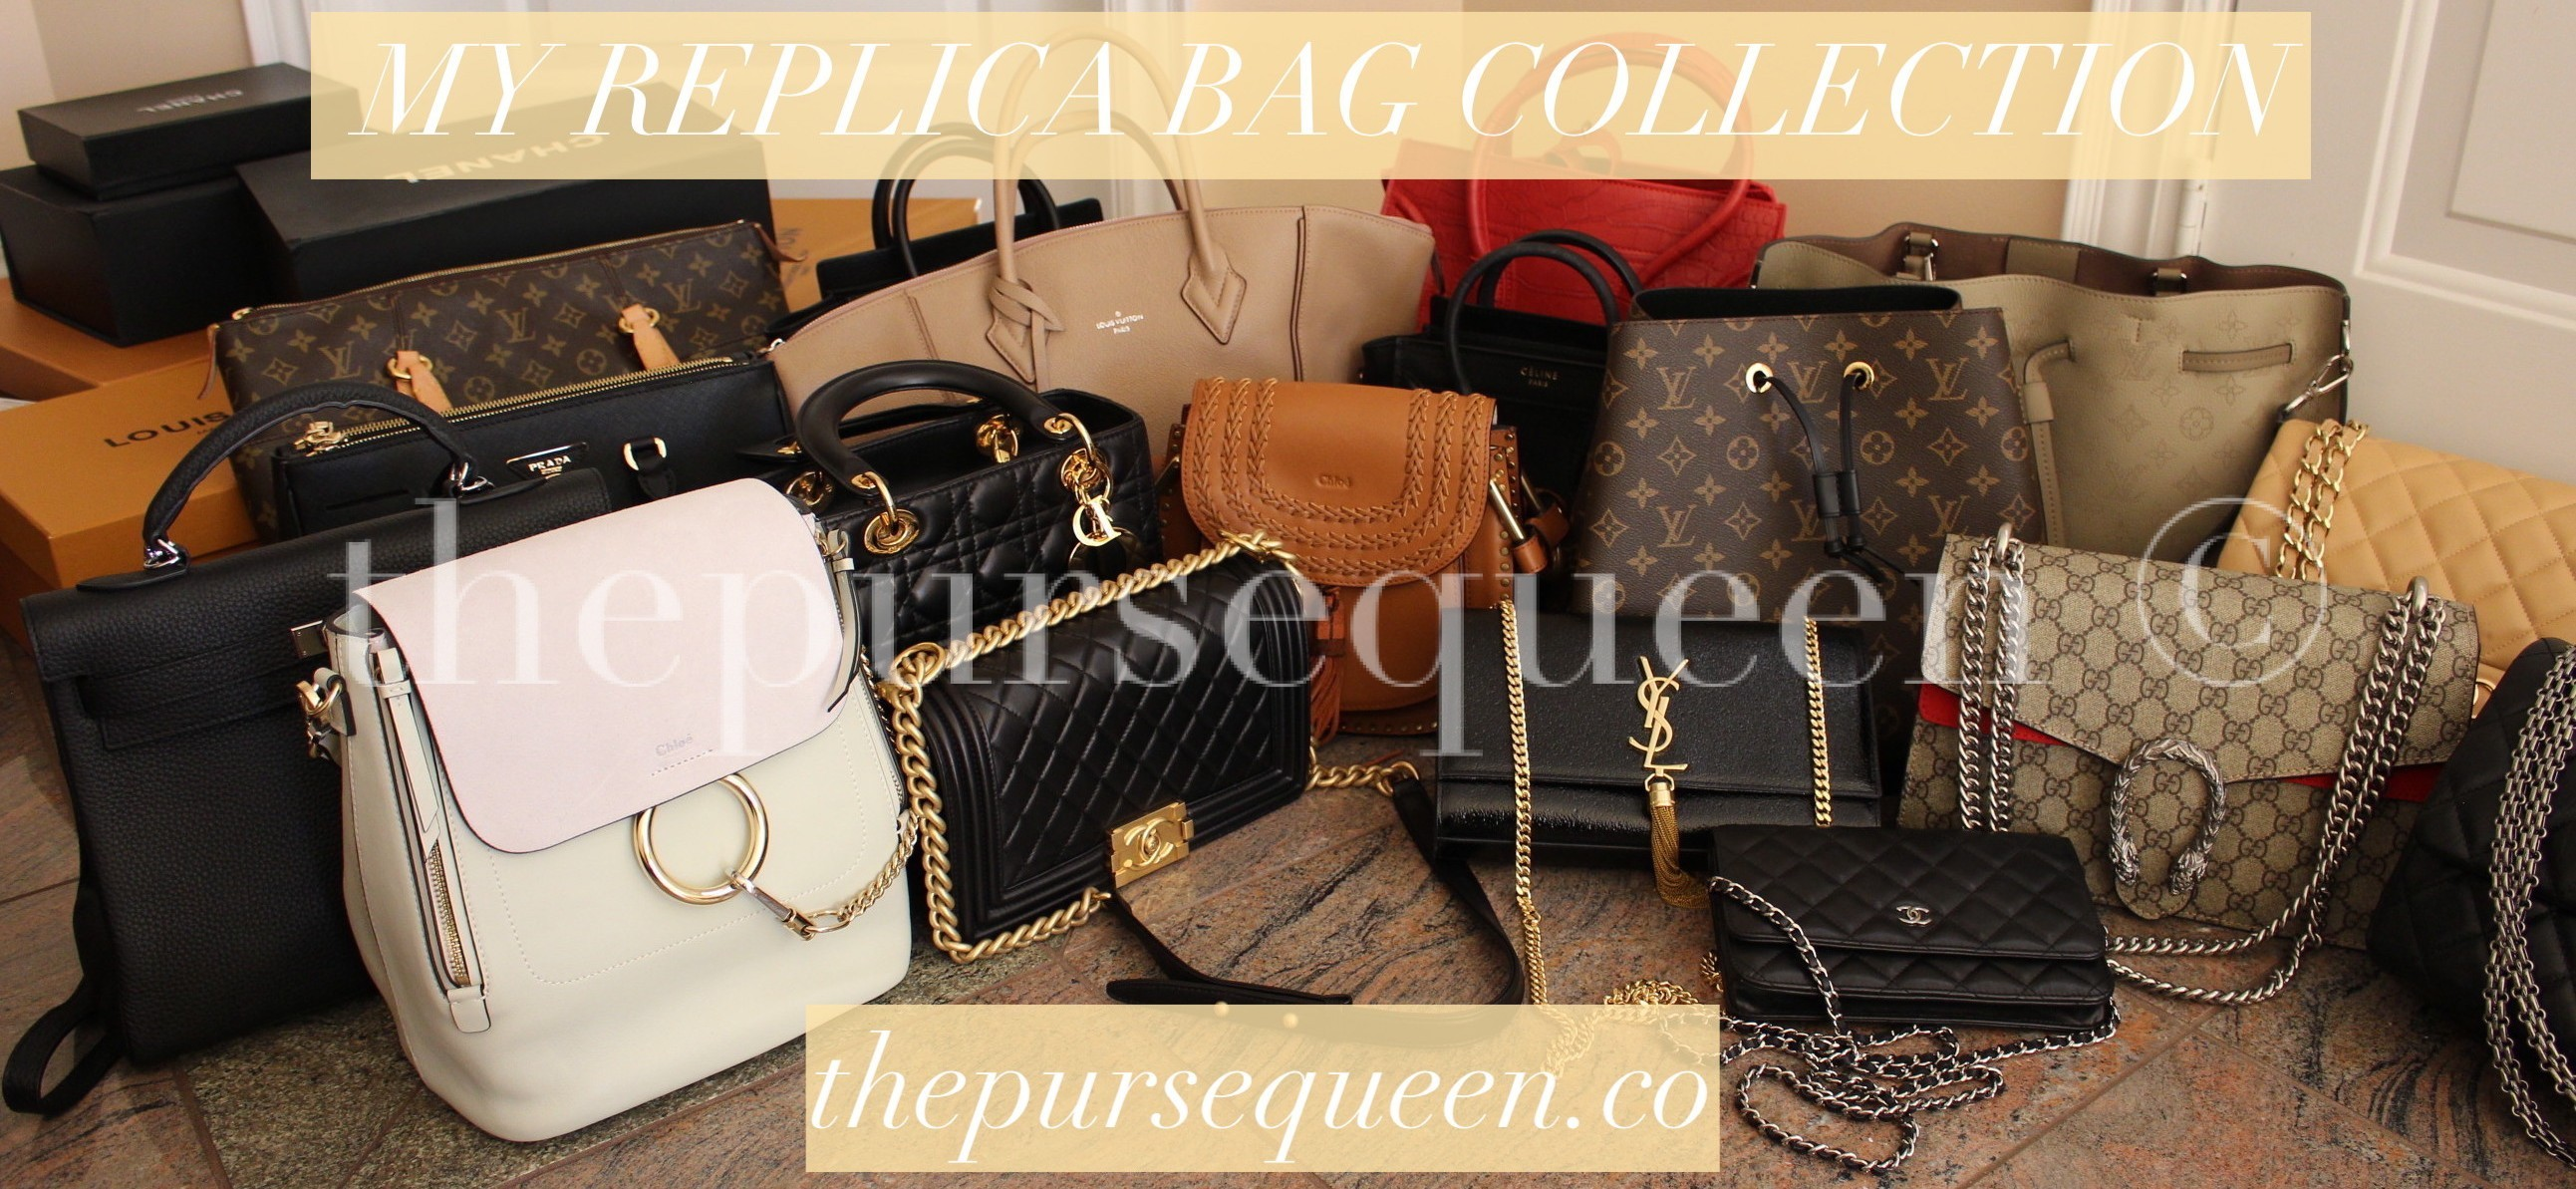 Recommended Replica Ers List Authentic Handbag Reviews By The Purse Queen Replicabag